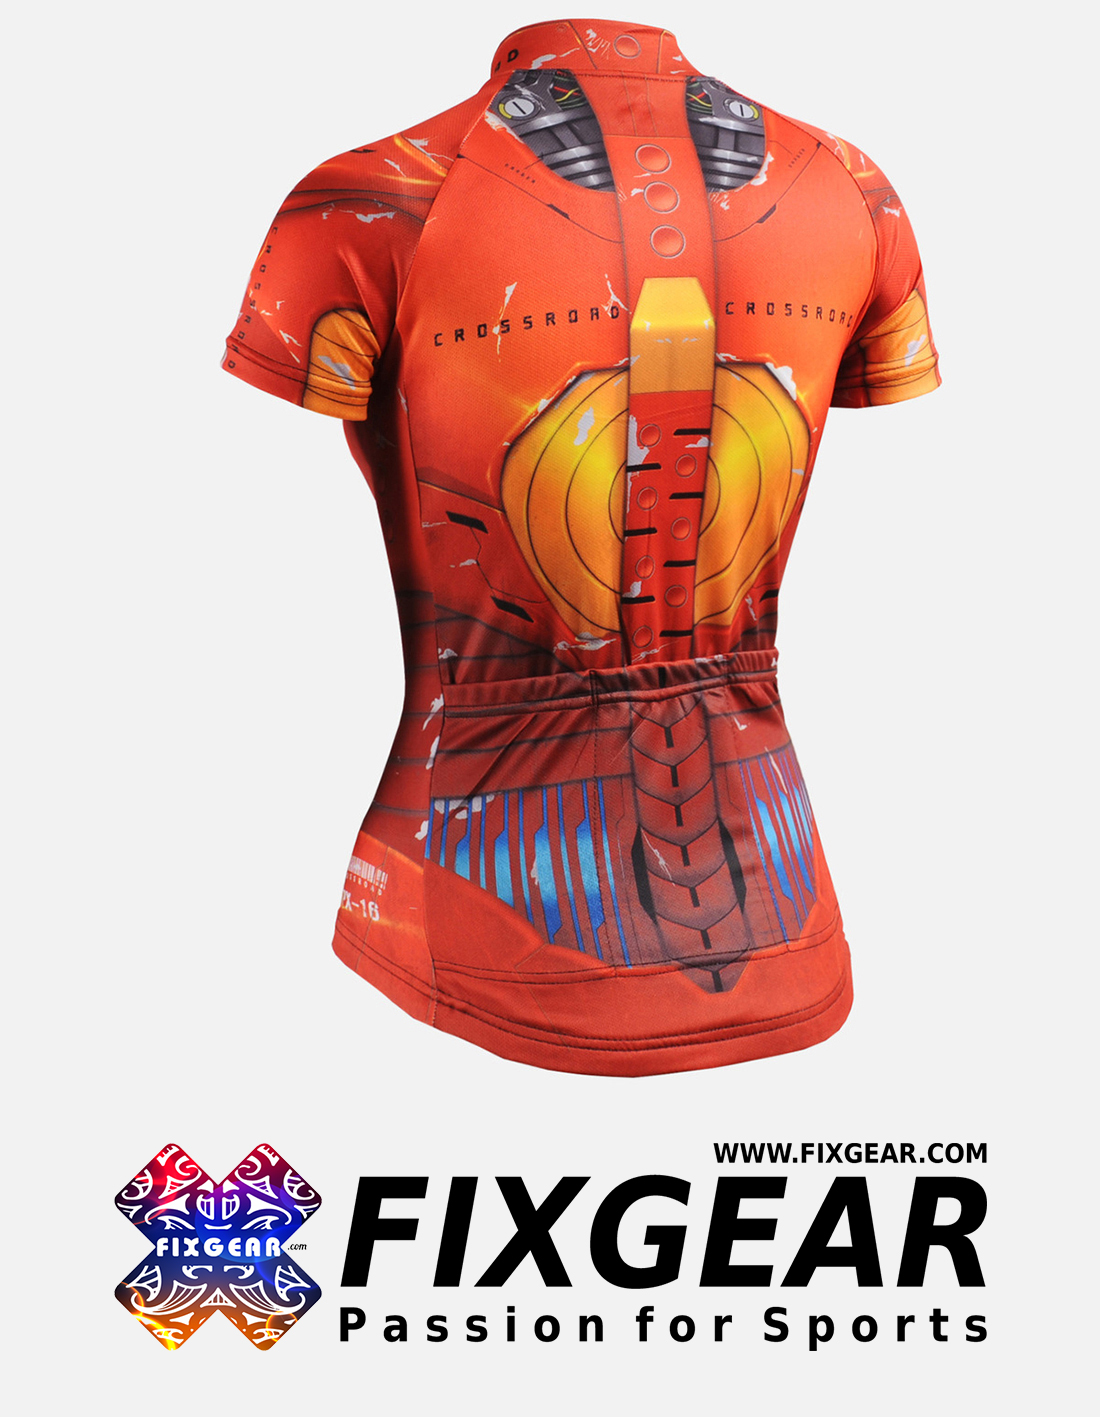 FIXGEAR CS-W802 Women's Short Sleeve Jersey